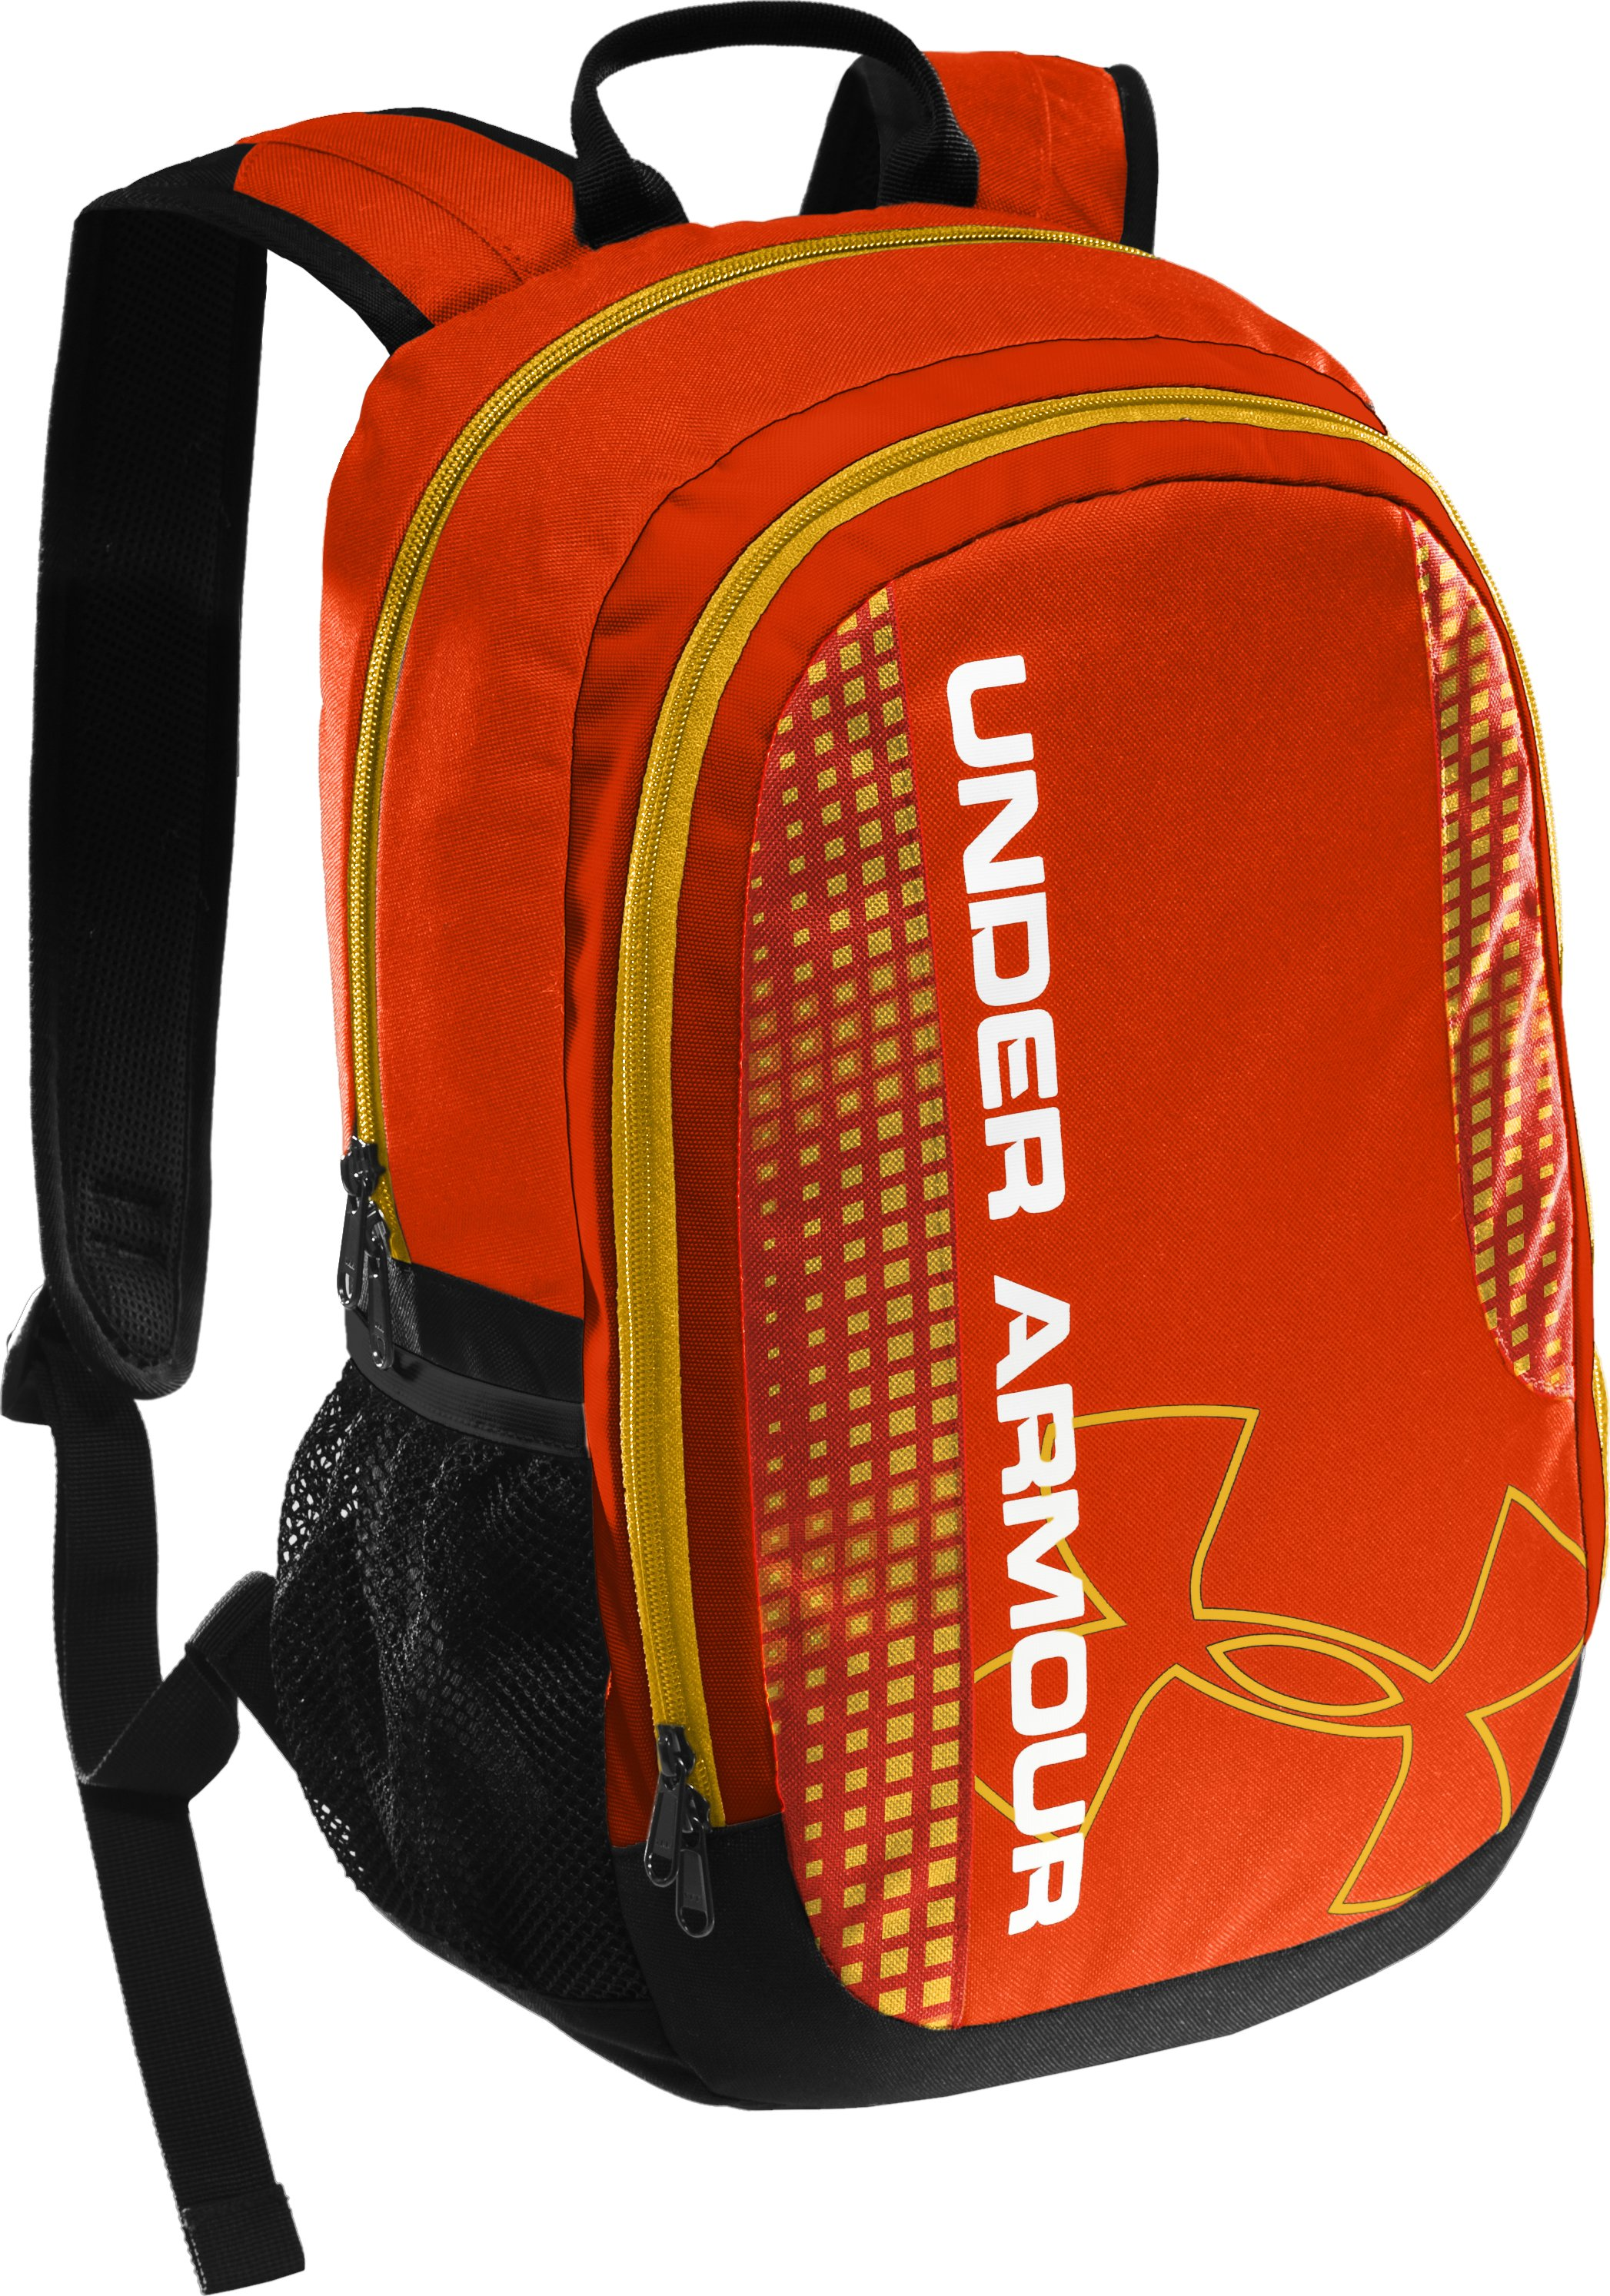 Dauntless Backpack, Dark Orange, zoomed image